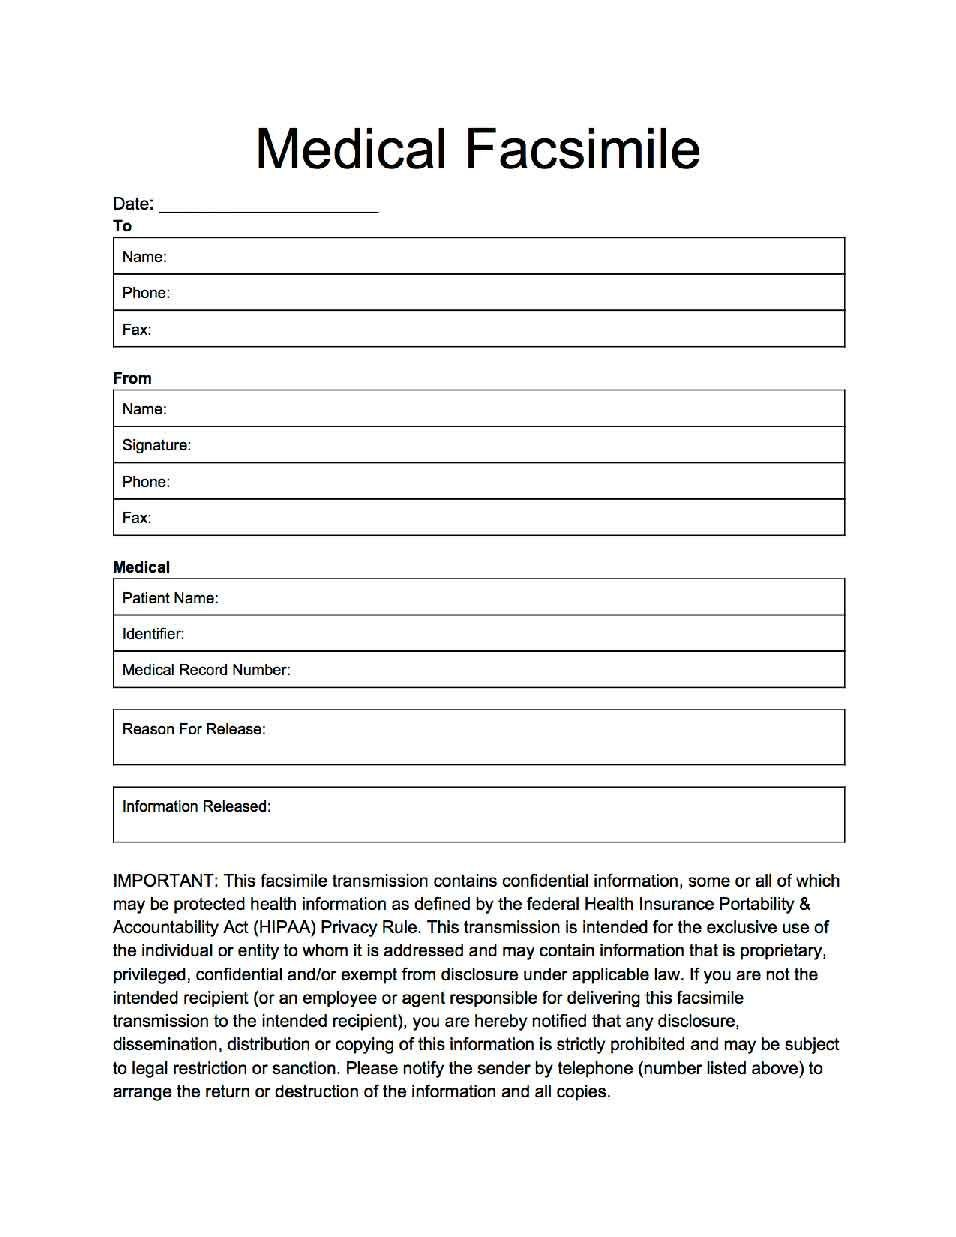 Medical Fax Cover Sheets Fax Cover for Medical Applications and Professions